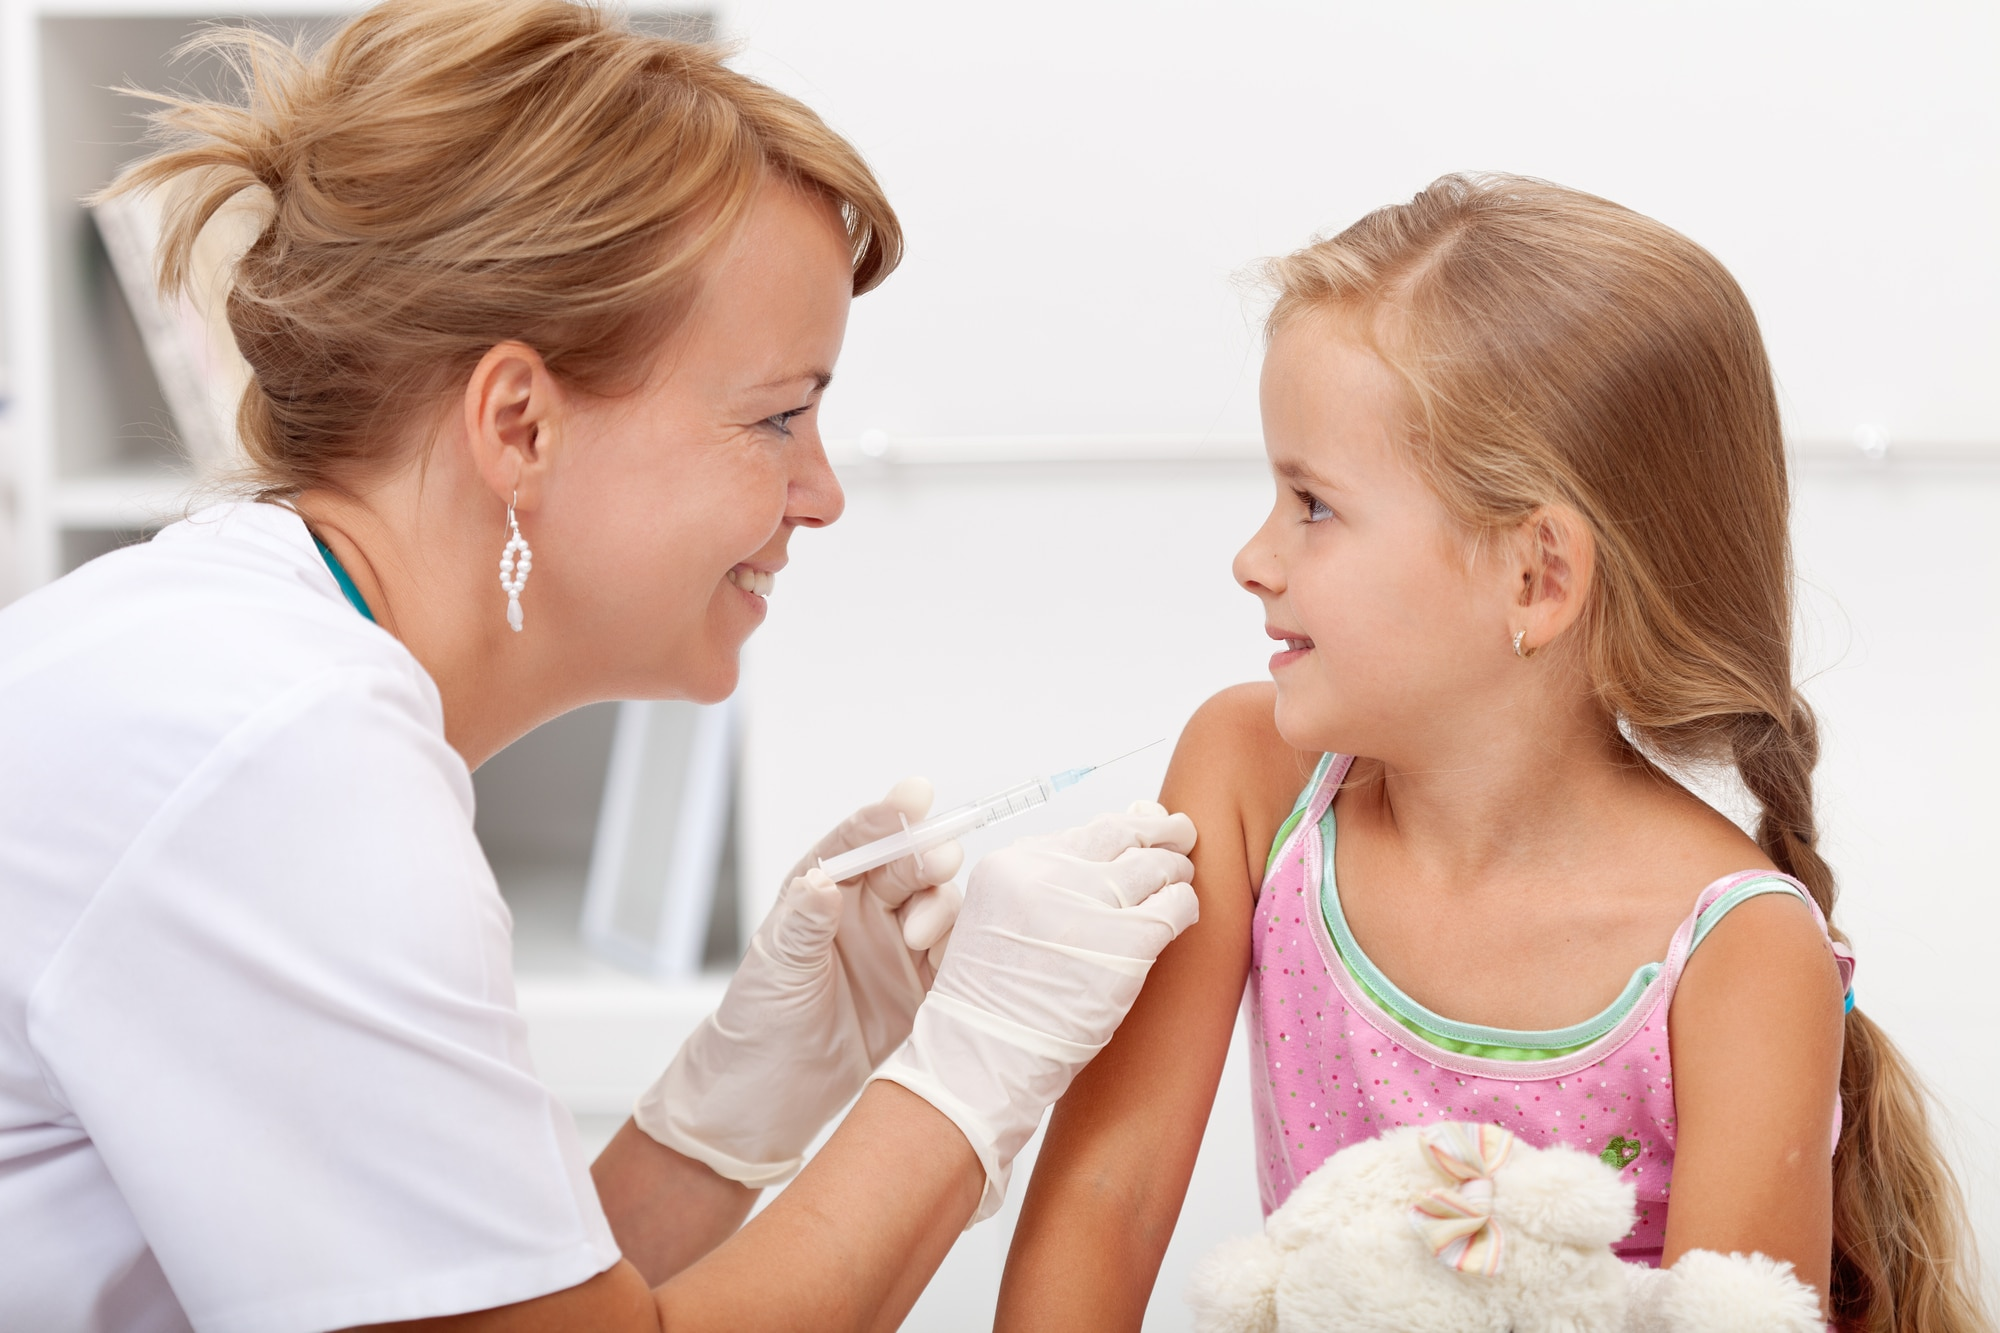 a brave young girl is preparing to receive the flu vaccine injection in her upper arm from a nurse